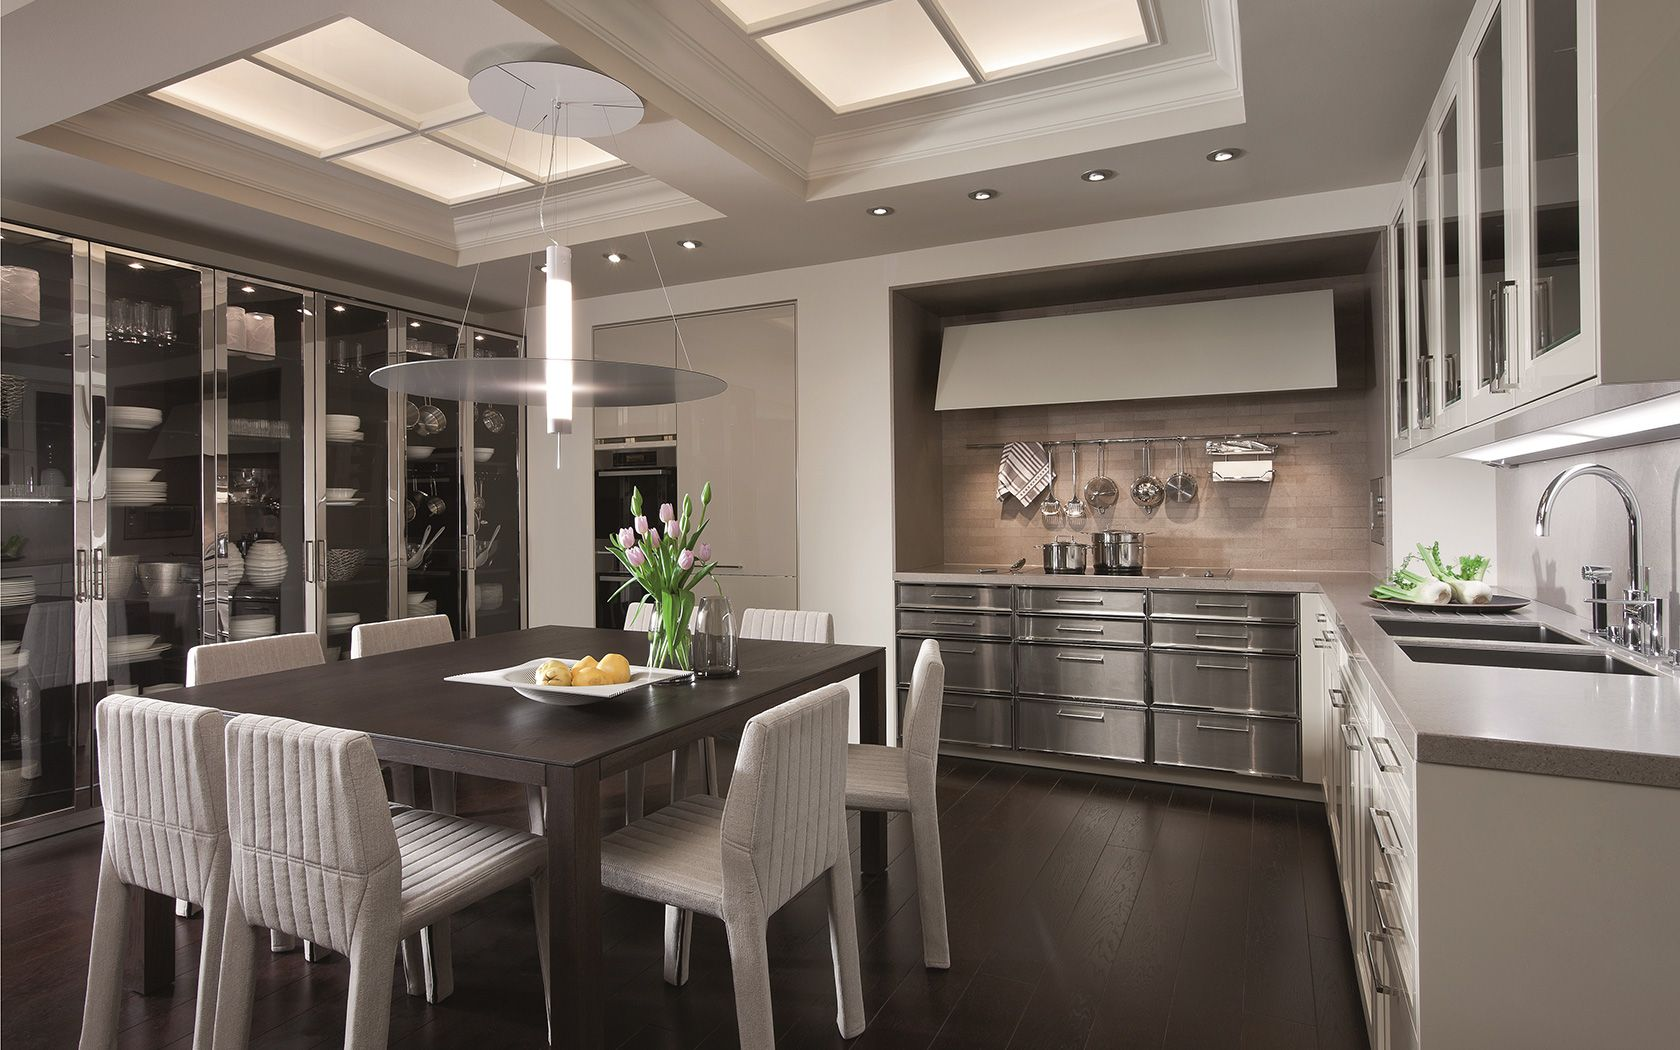 Glass And Metal Cabinets | Classic Kitchen With Handles: BeauxArts.02 |  Siematic.